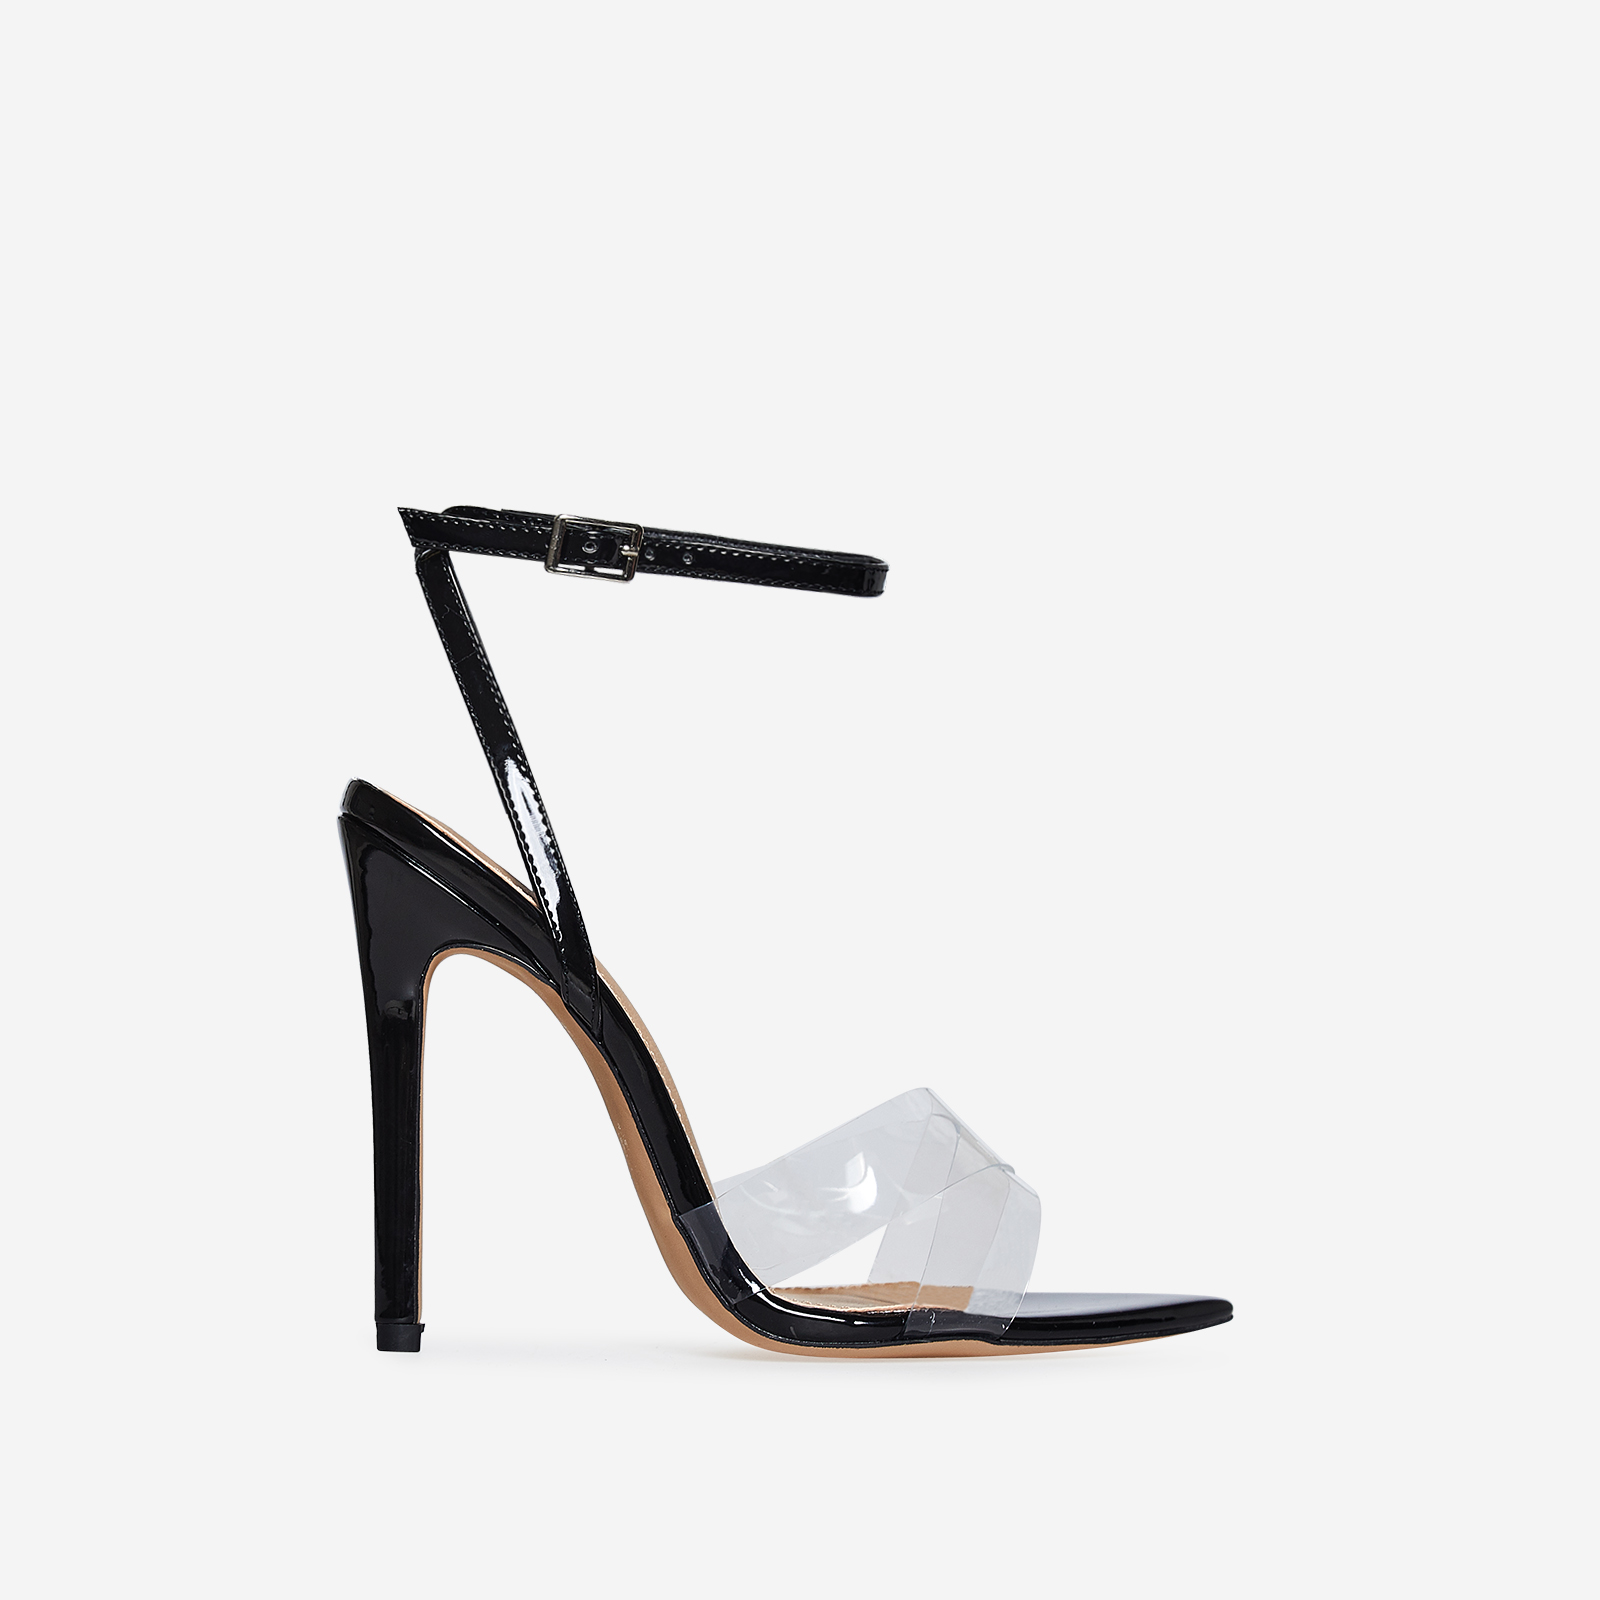 Celia Perspex Pointed Barely There Heel In Black Patent